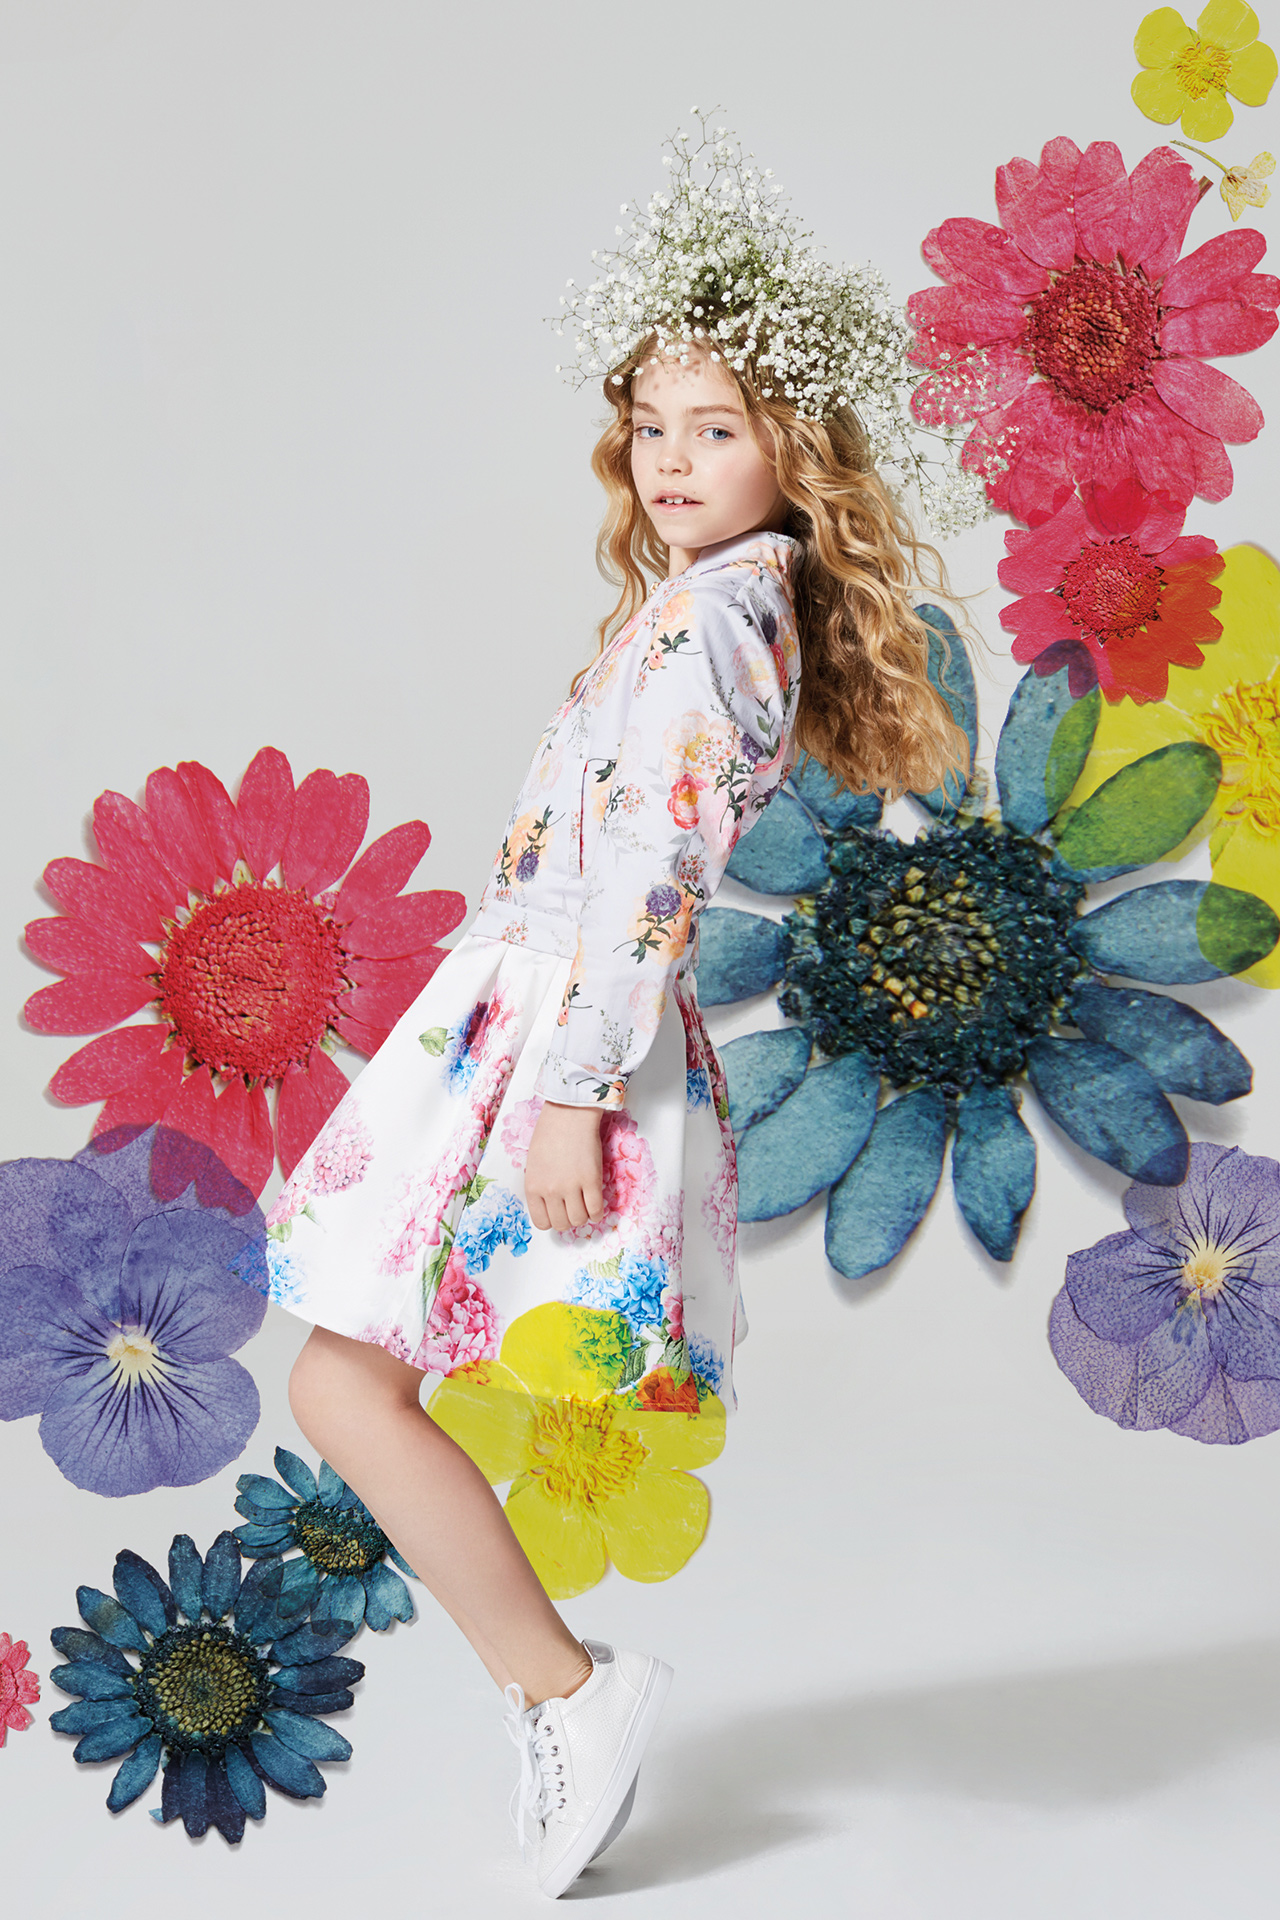 Floral kids fashion girl 1 Emma Tunbridge